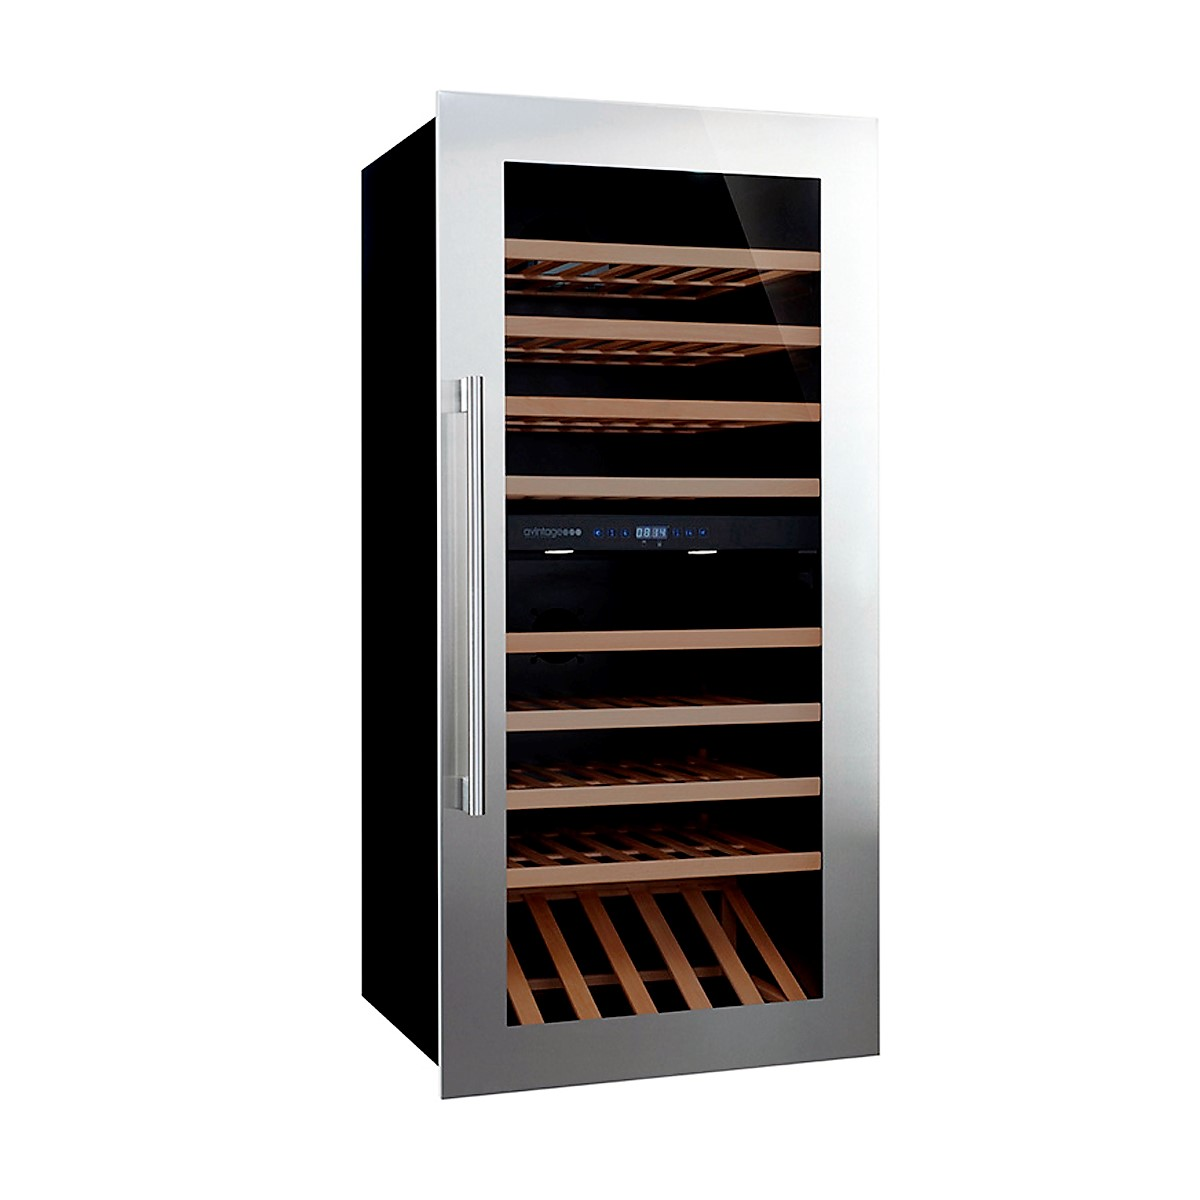 Avintage  Wine Cellar Builtin AV79XDZI 3  Kitchen Spain